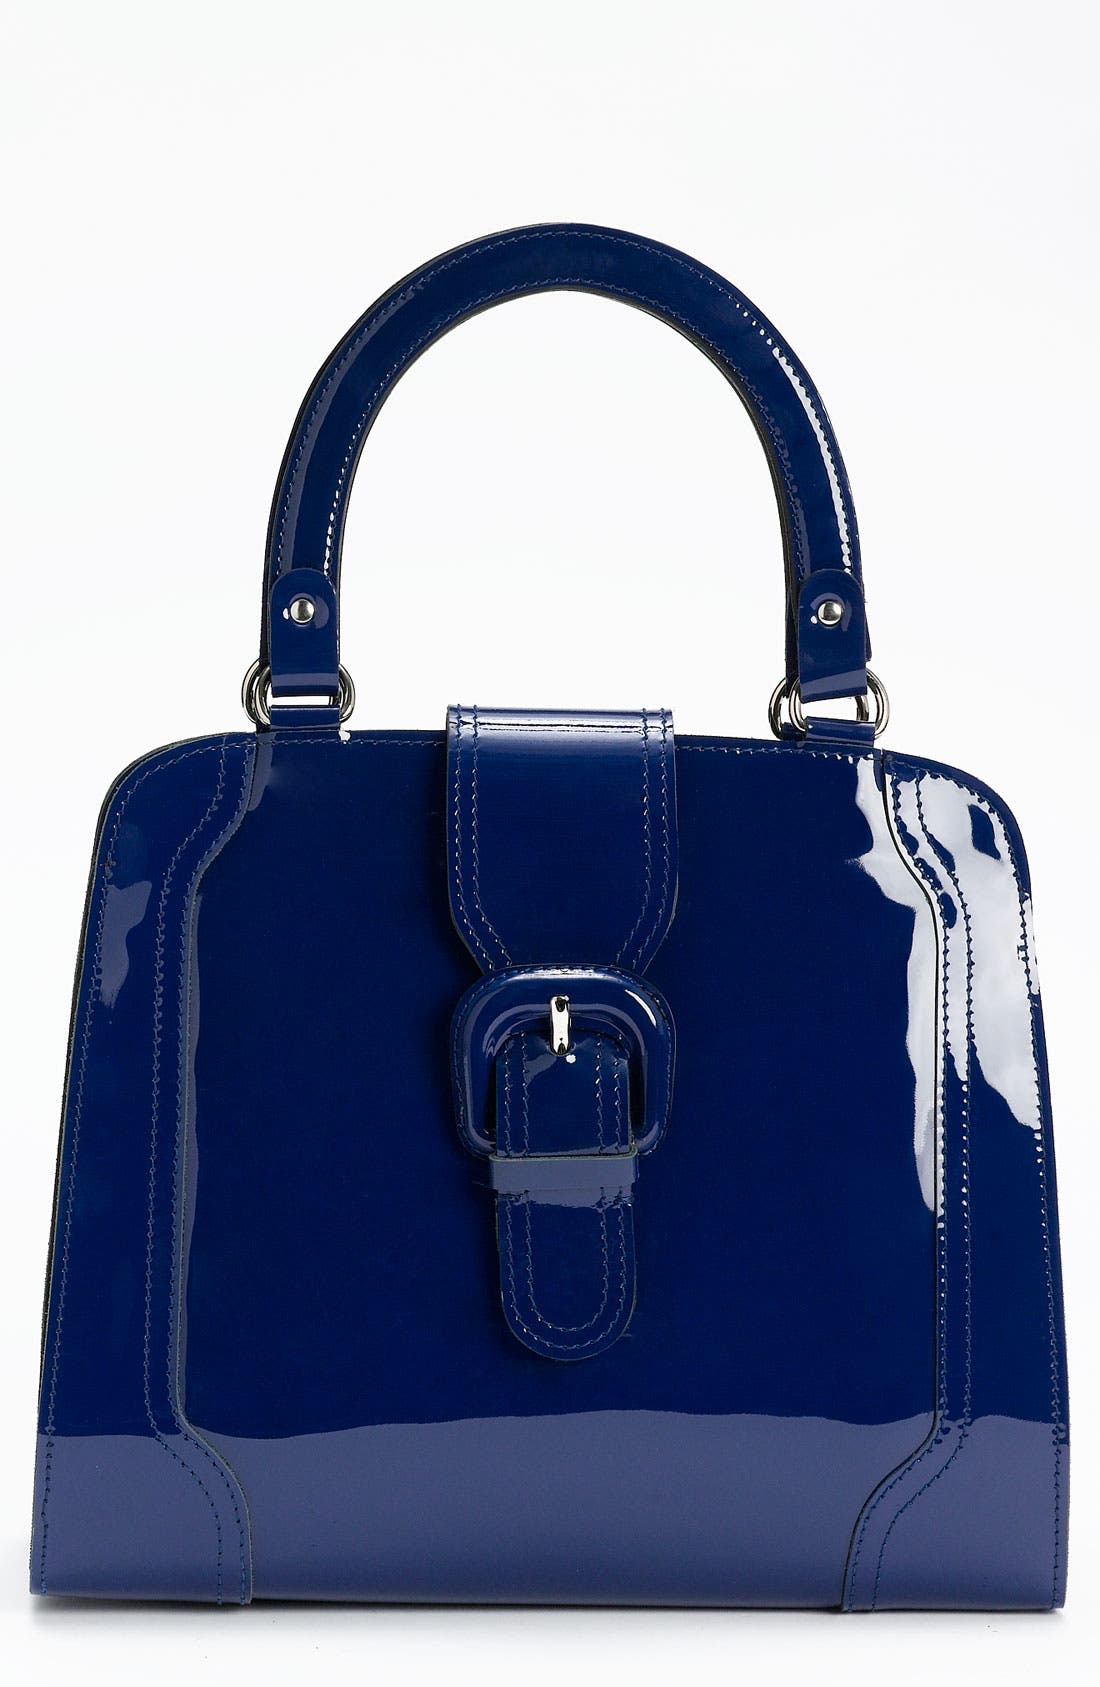 Main Image - Marni 'Medium' Patent Leather Frame Bag